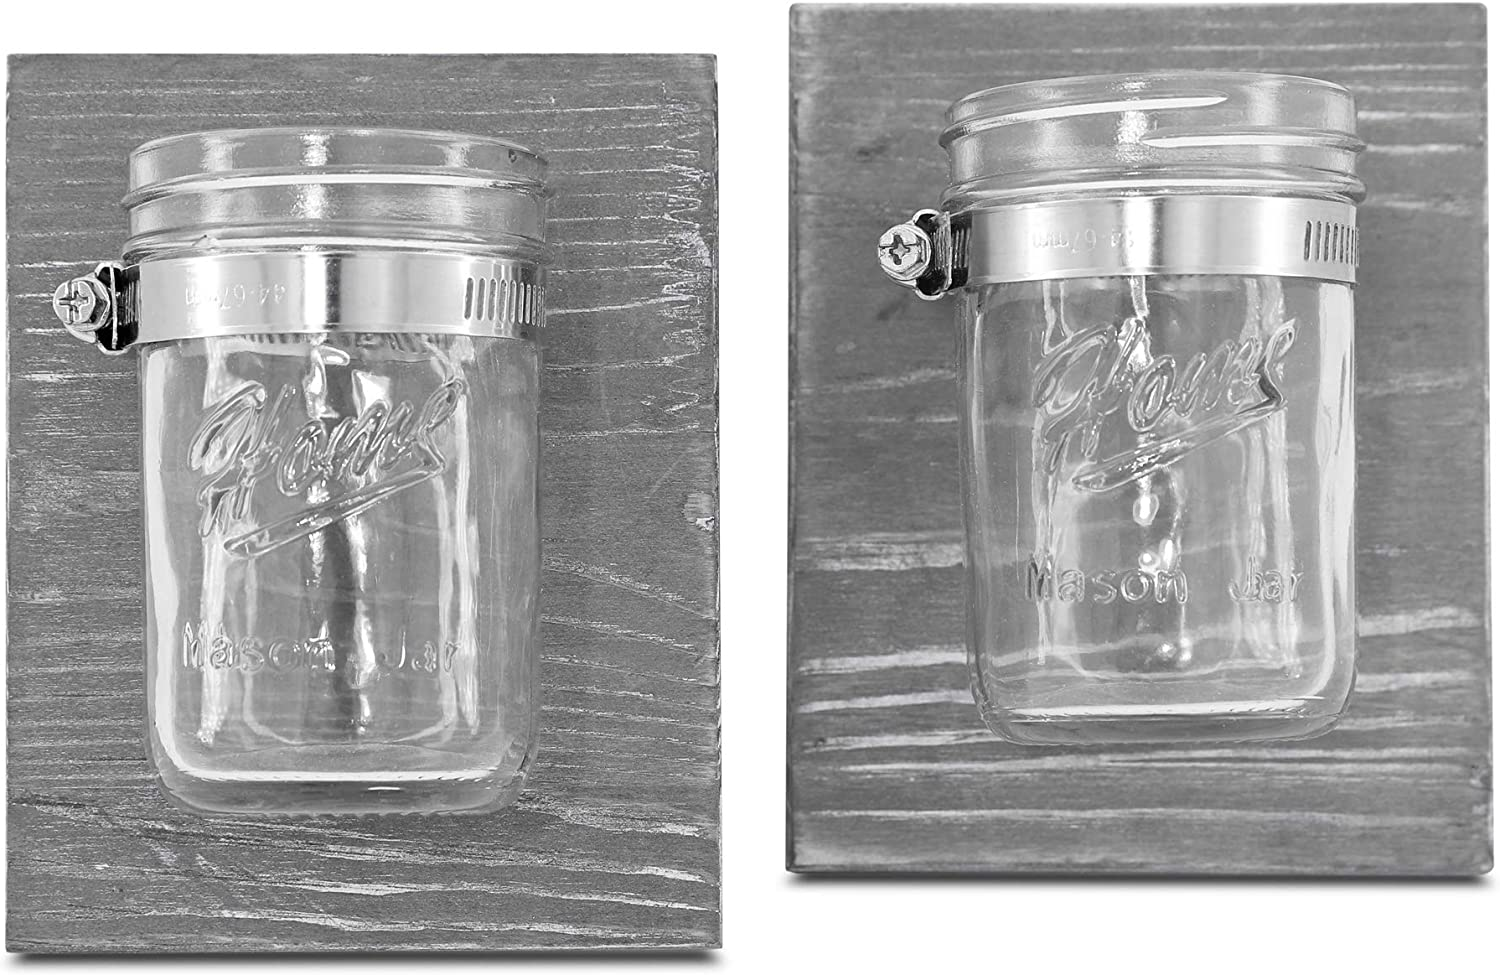 Rustic Mason Jar Organizer - Hanging Bathroom Storage, Mason Jar Office Organizer, Farmhouse Organizer for Planters, Candles [Set of 2]